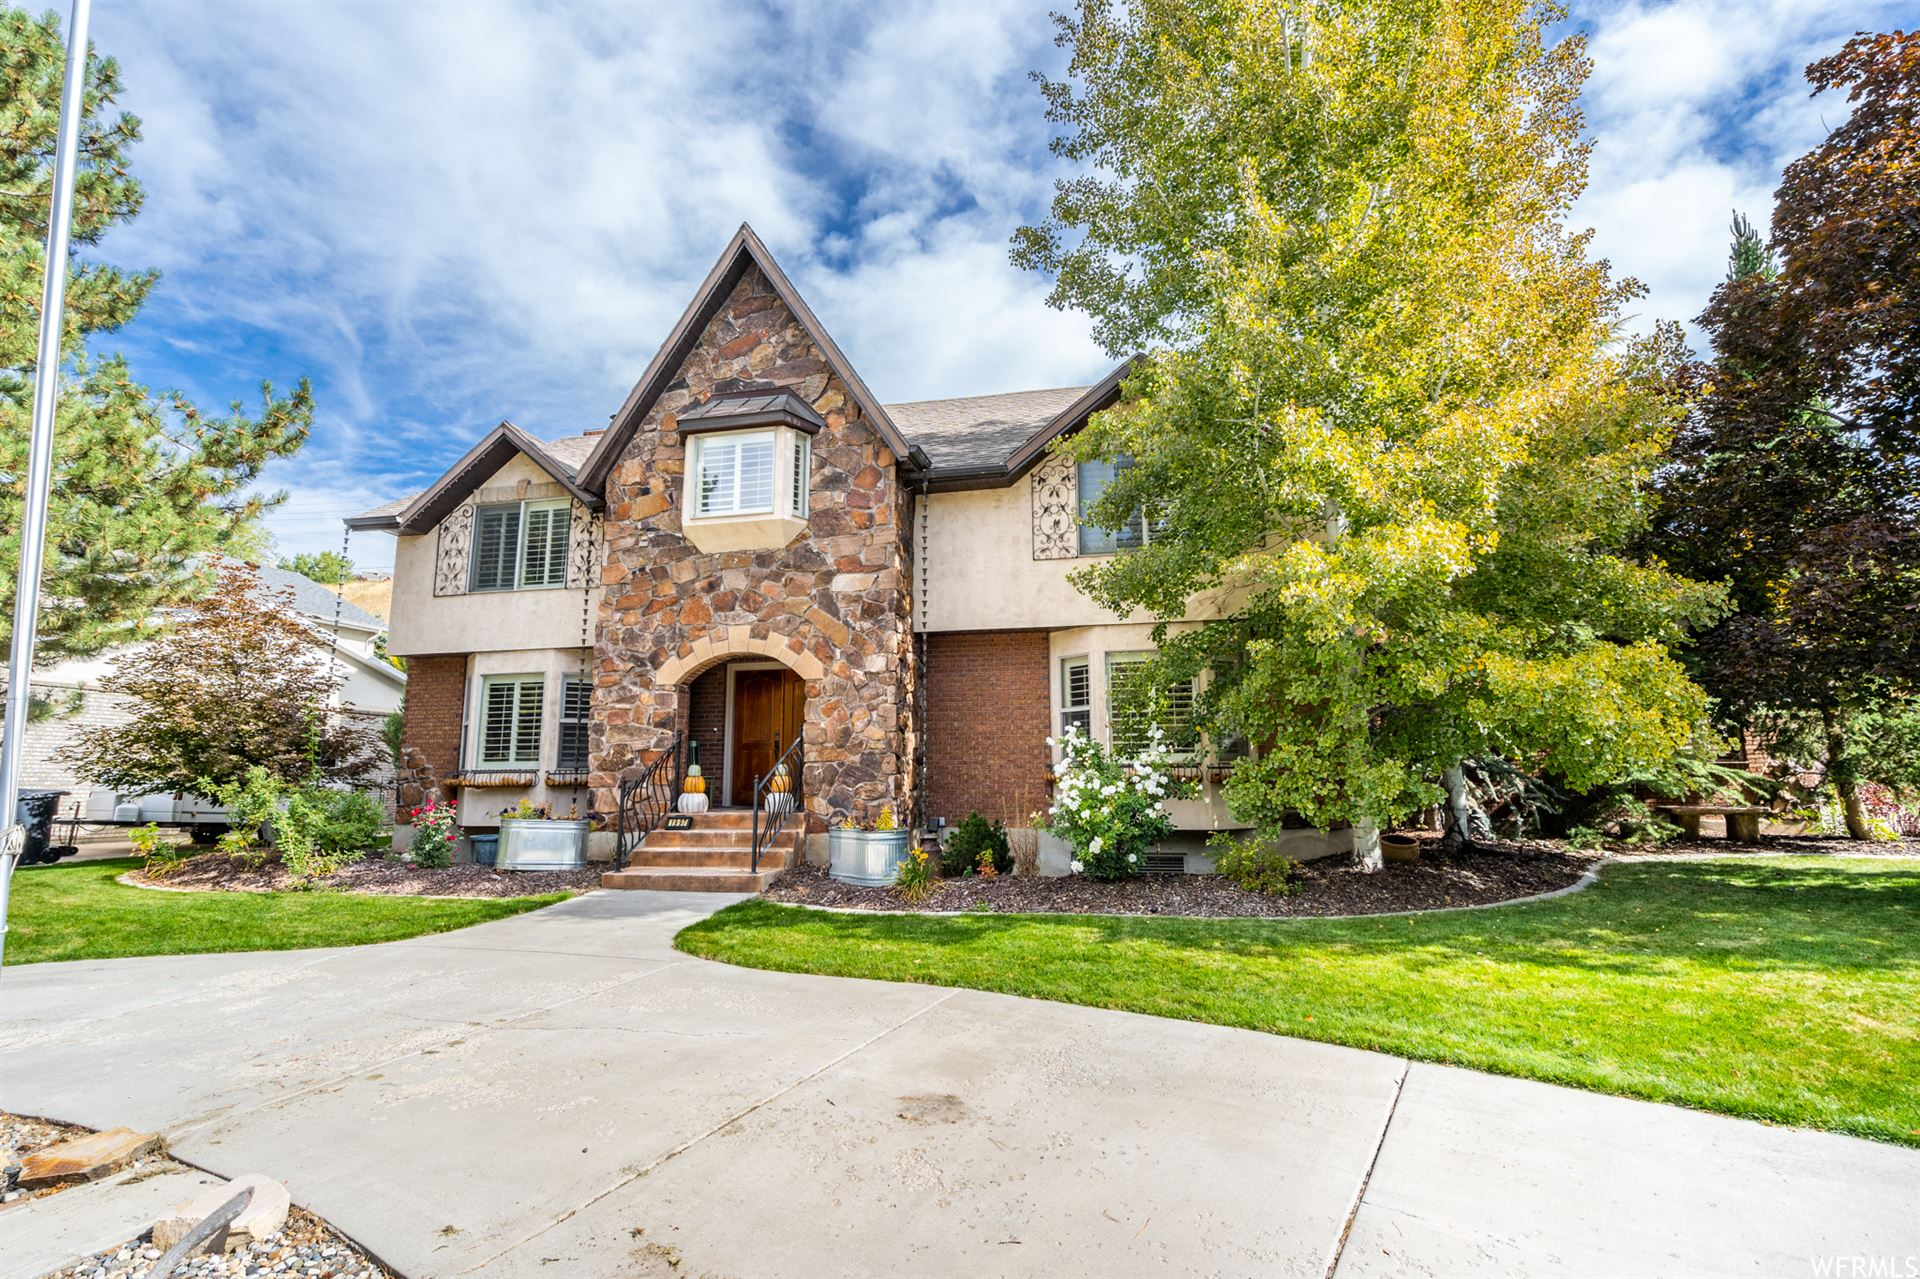 Photo of 1997 E FOREST LN, Cottonwood Heights, UT 84121 (MLS # 1709160)